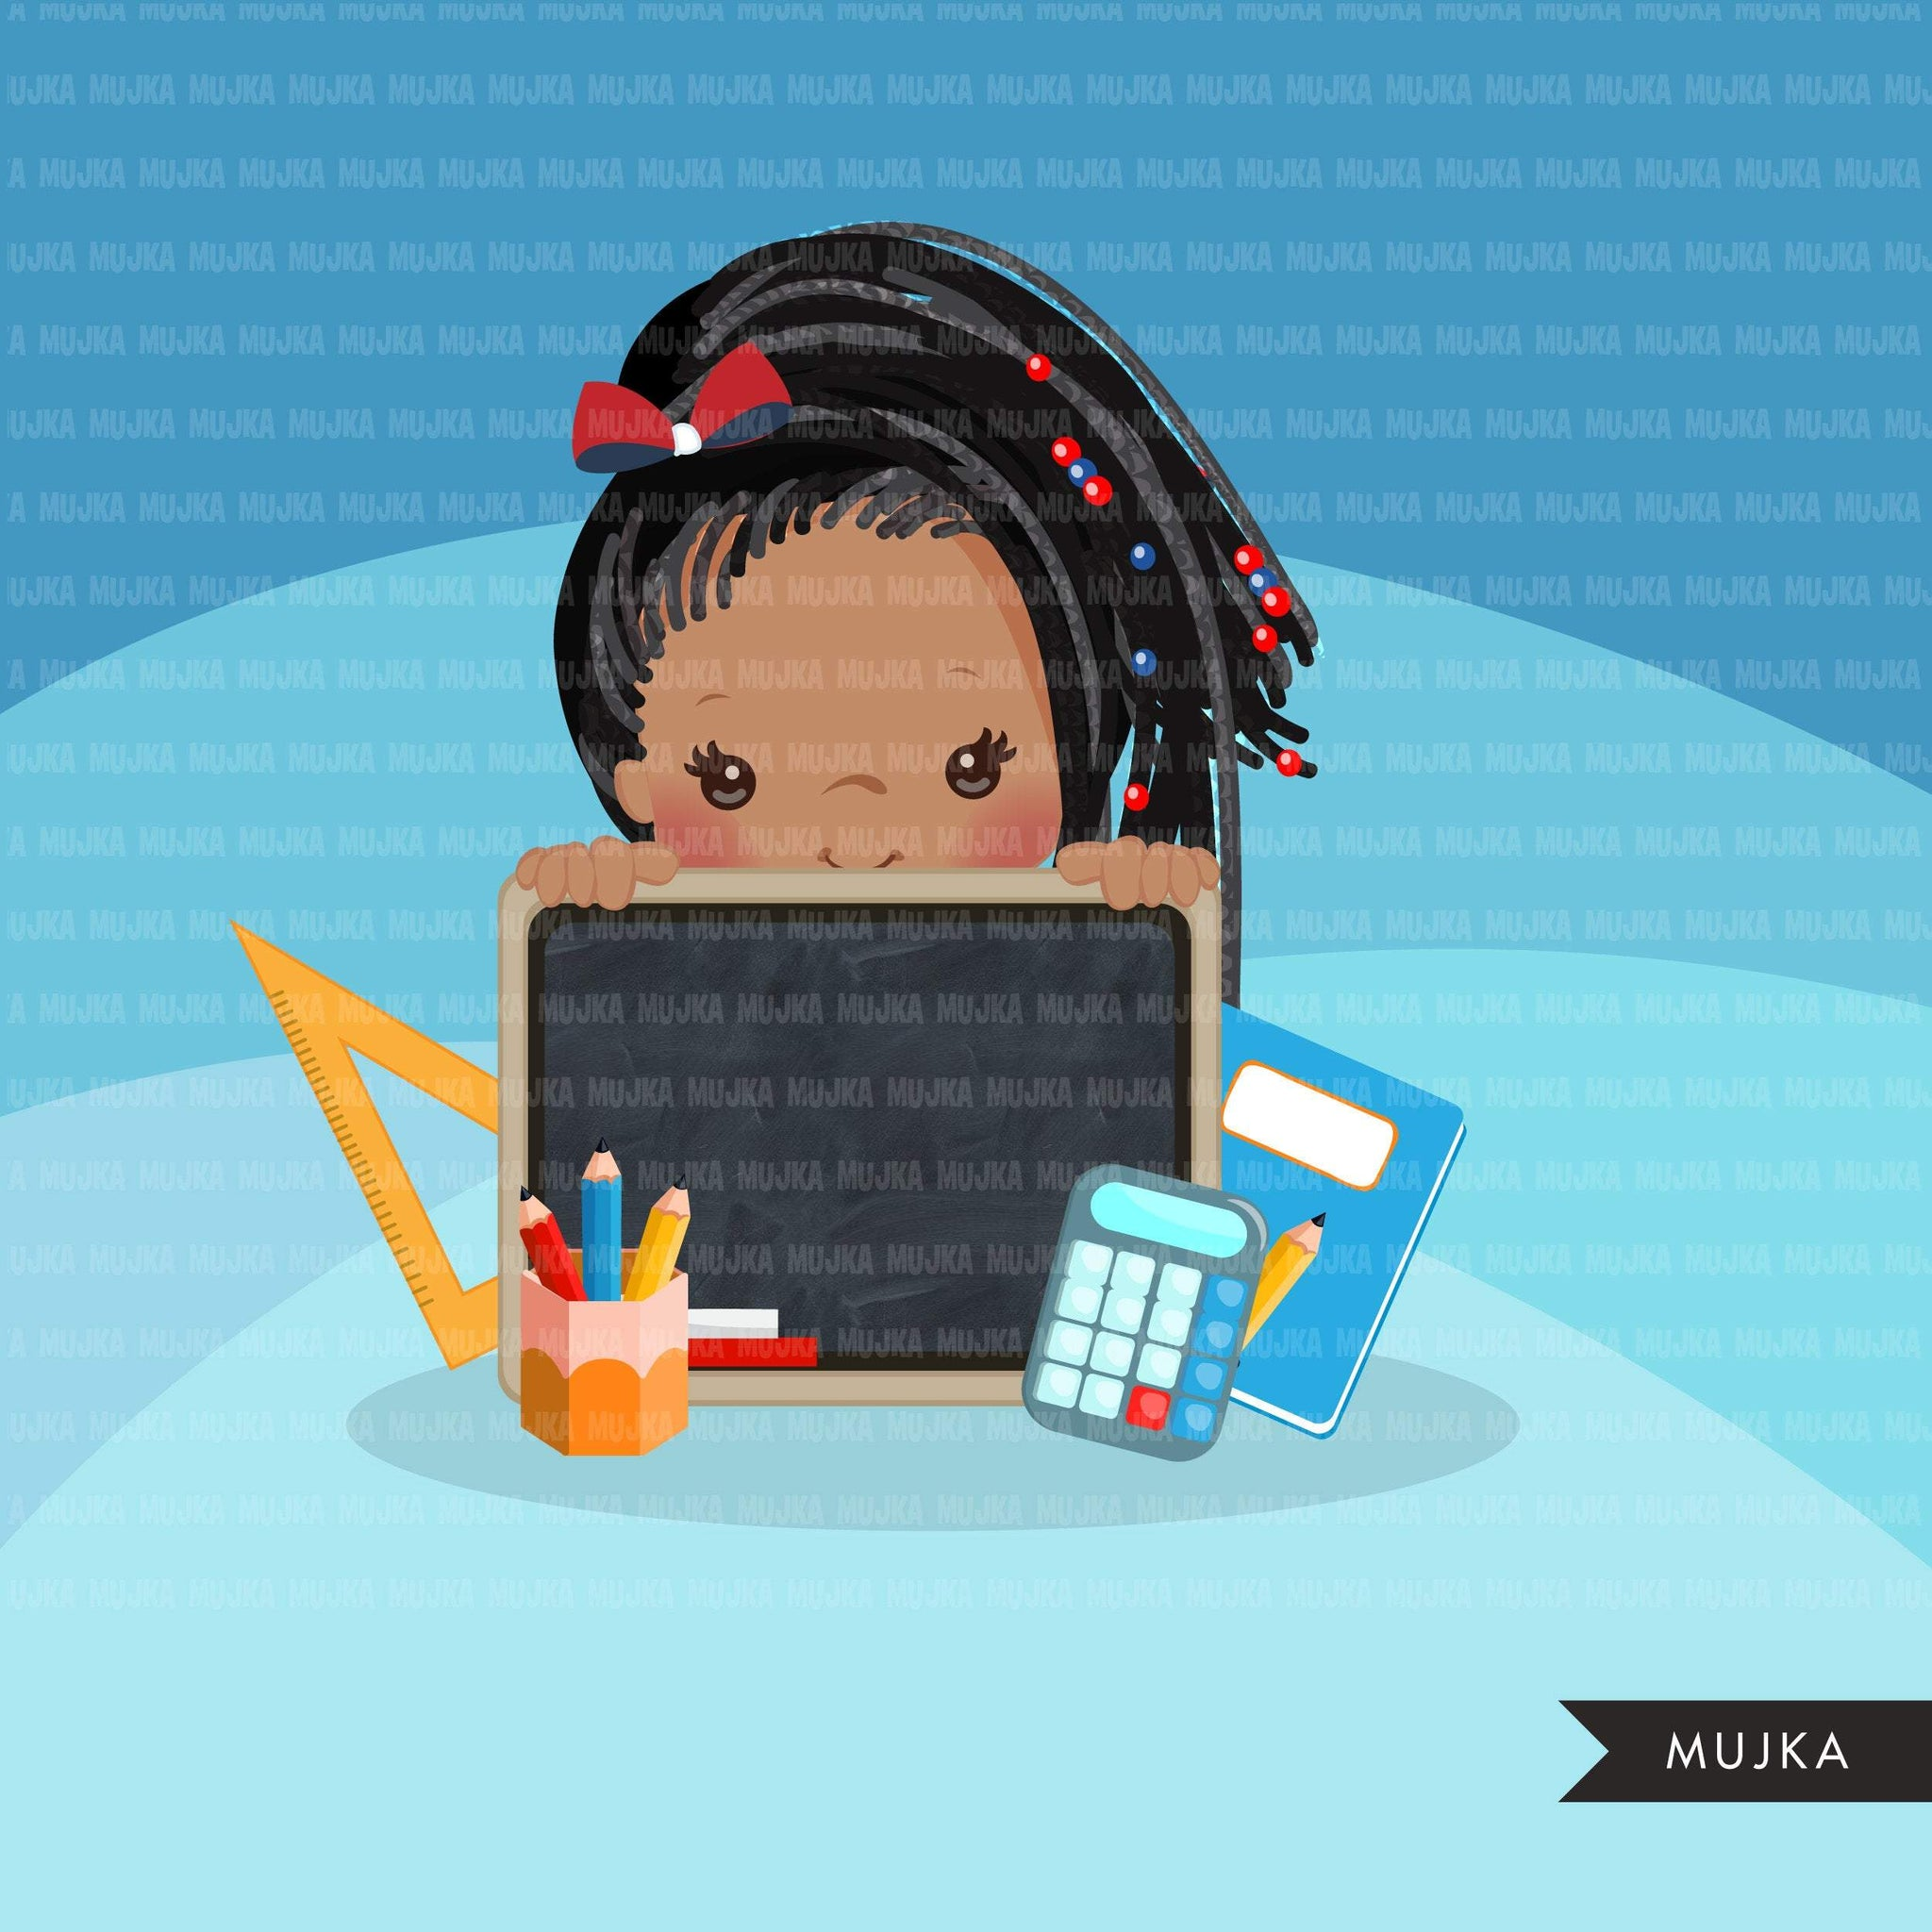 Back to school clipart peeking black students Afro Girl students black board, Education, teaching graphics, PRE-K, grade 1